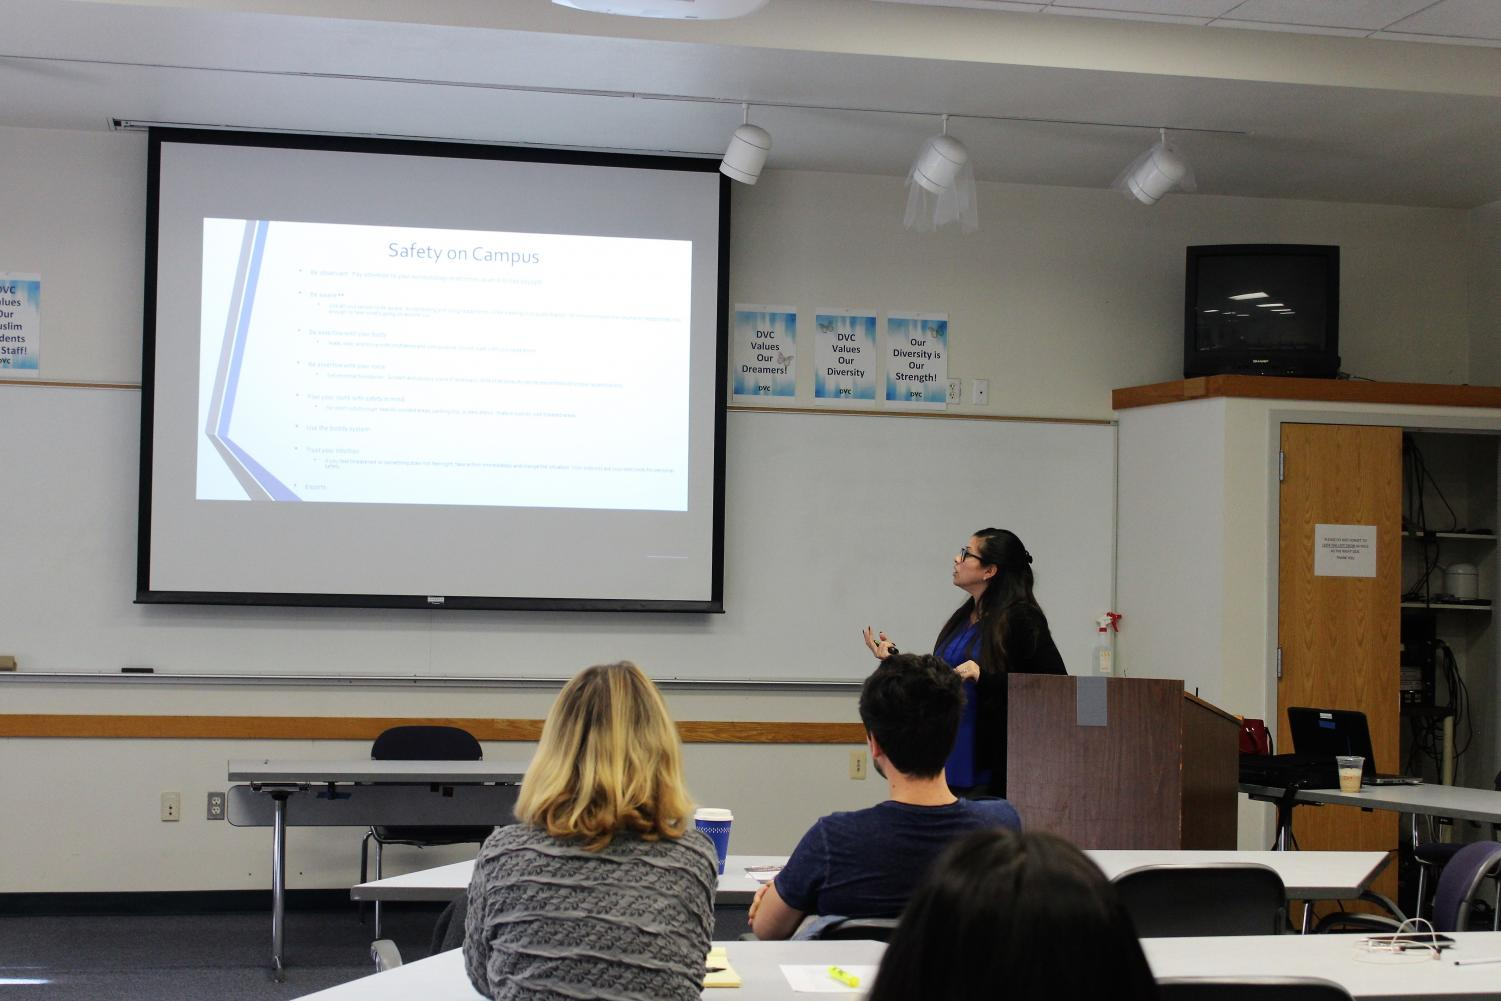 Detective Vanessa Avalos  at the Student Union presenting about safety on campus on Feb.1 2018.